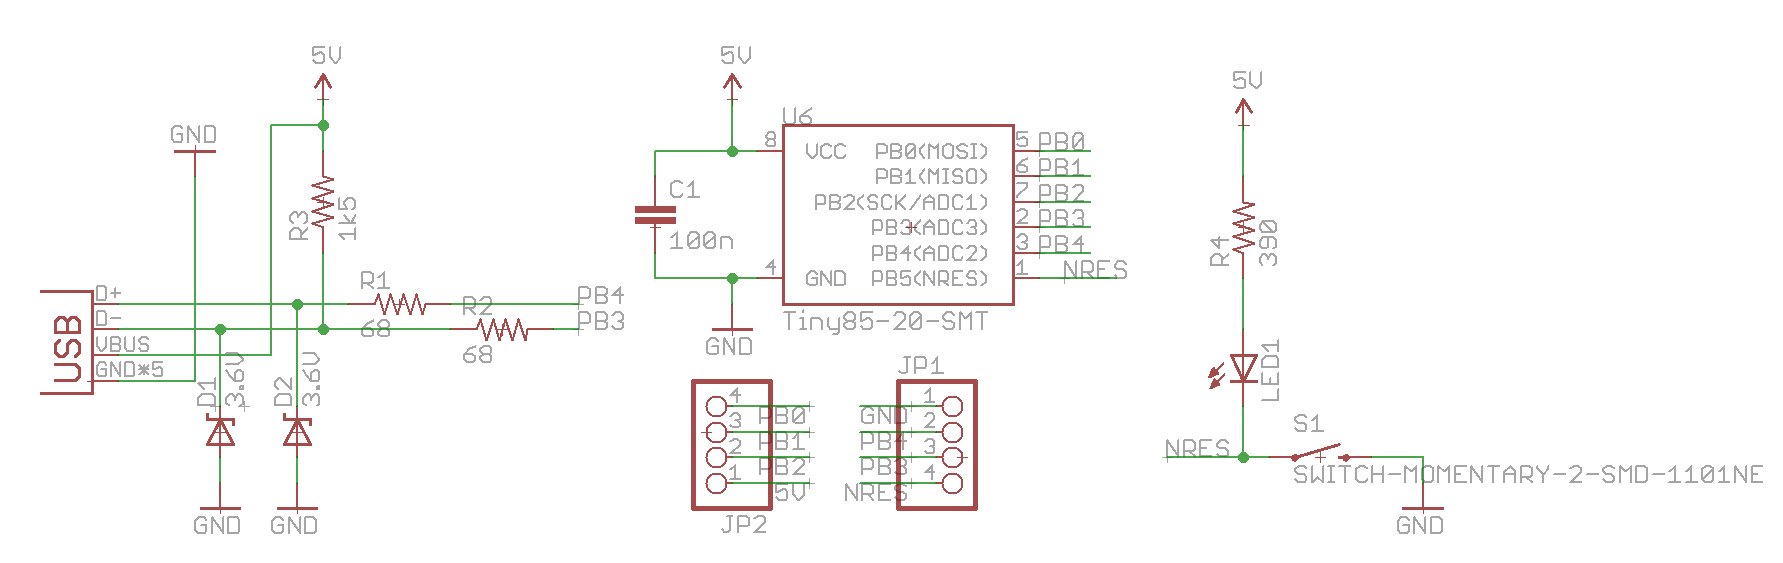 Electronics Irc Archive For 2016 03 04 Robotic Circuit Page 9 Automation Circuits Nextgr